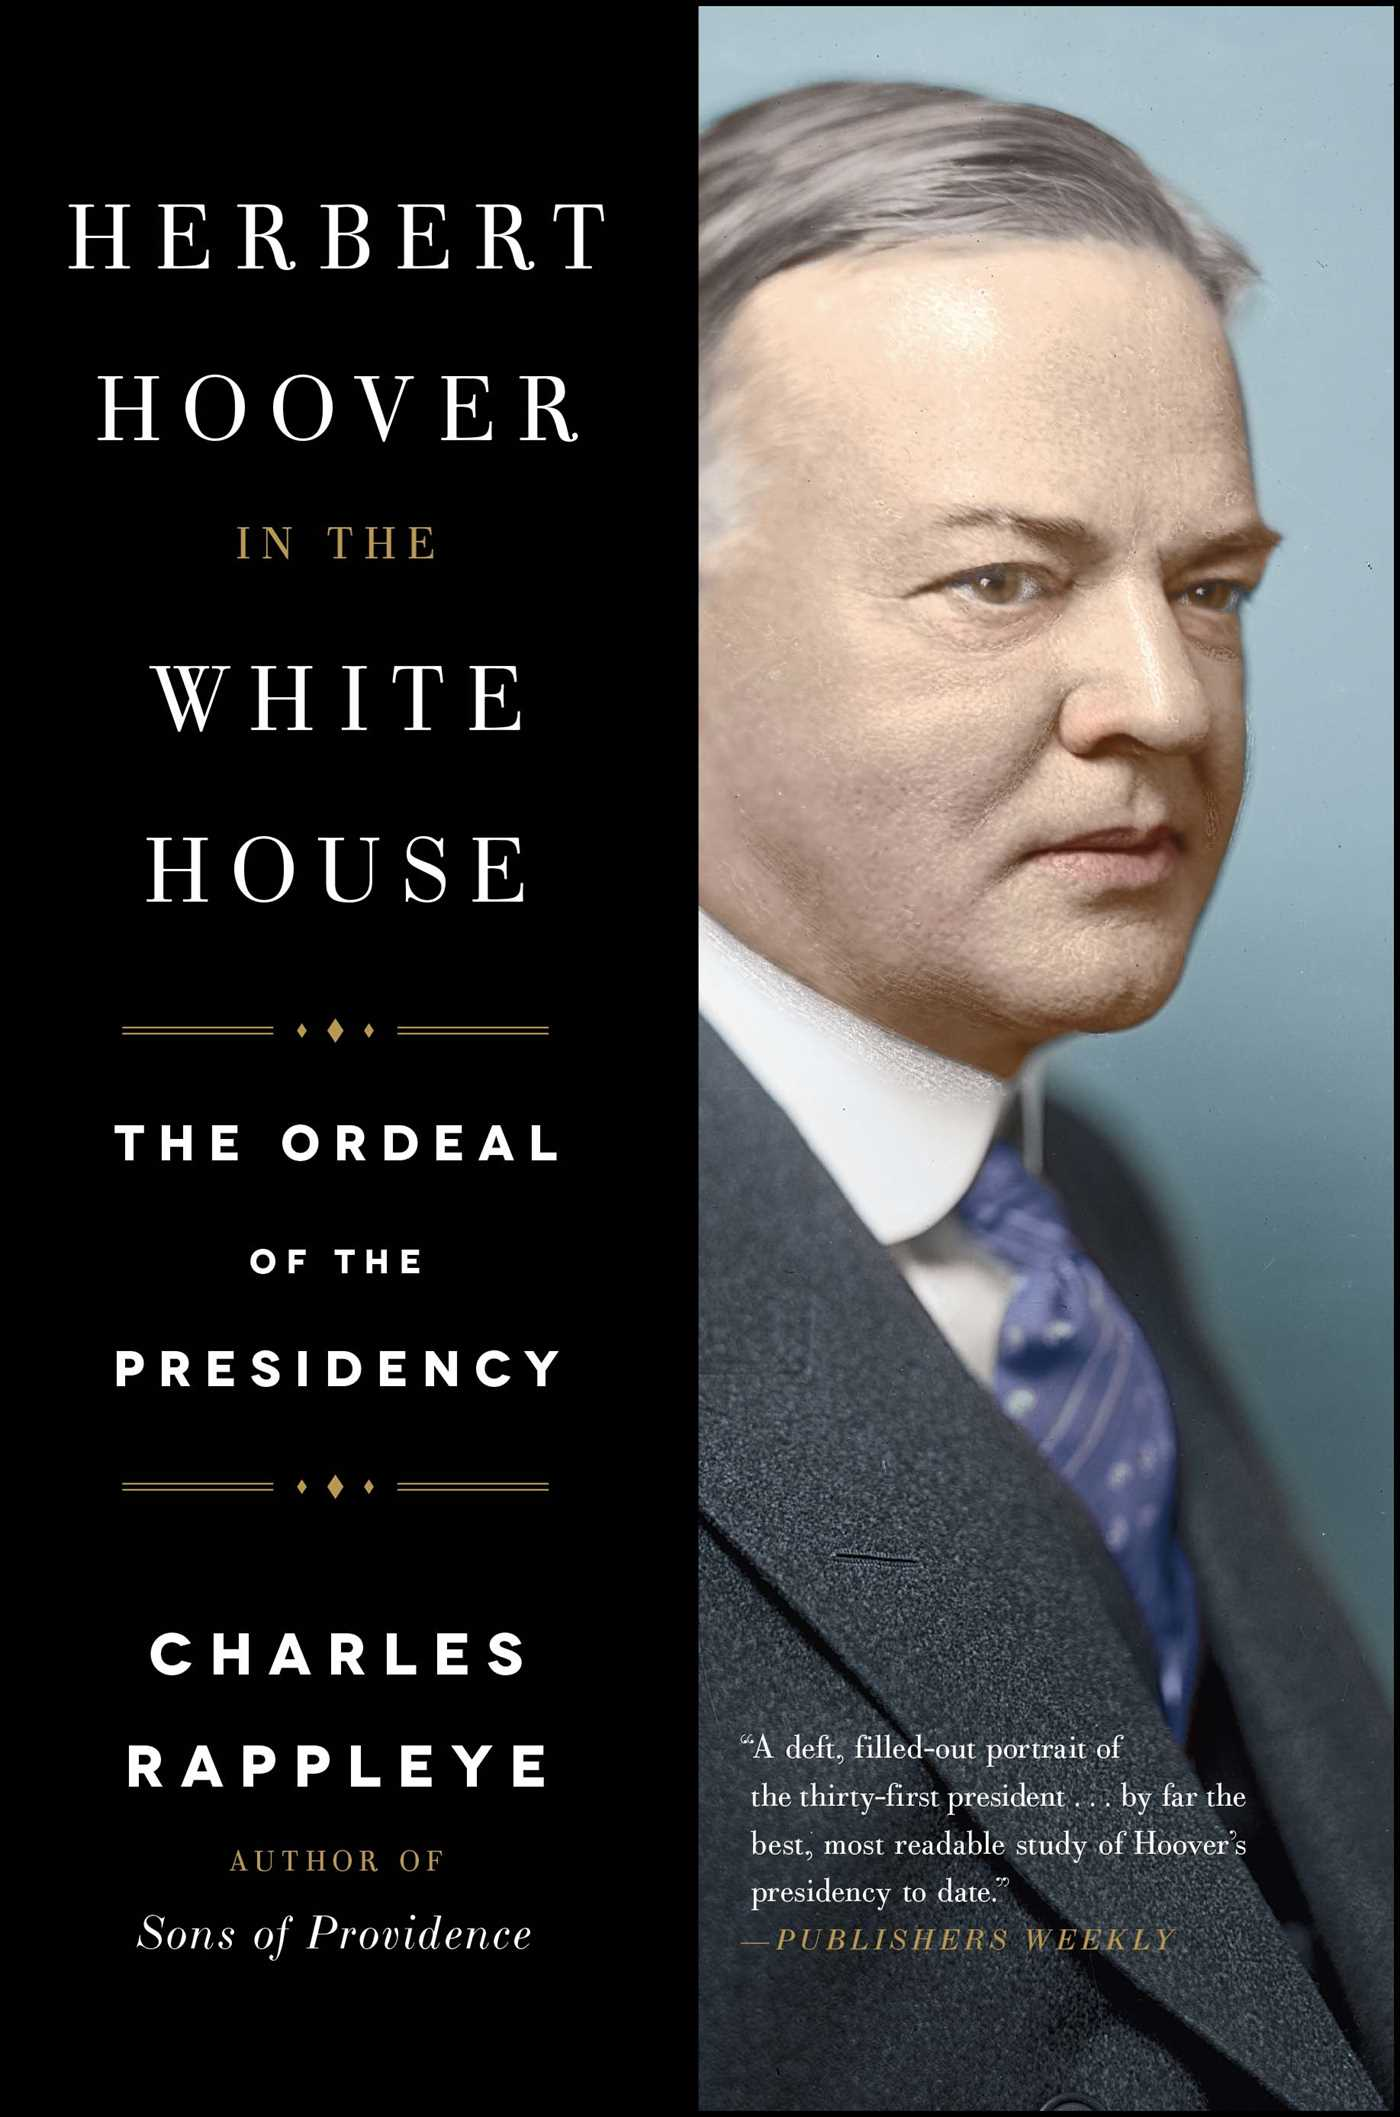 Herbert hoover in the white house 9781451648683 hr